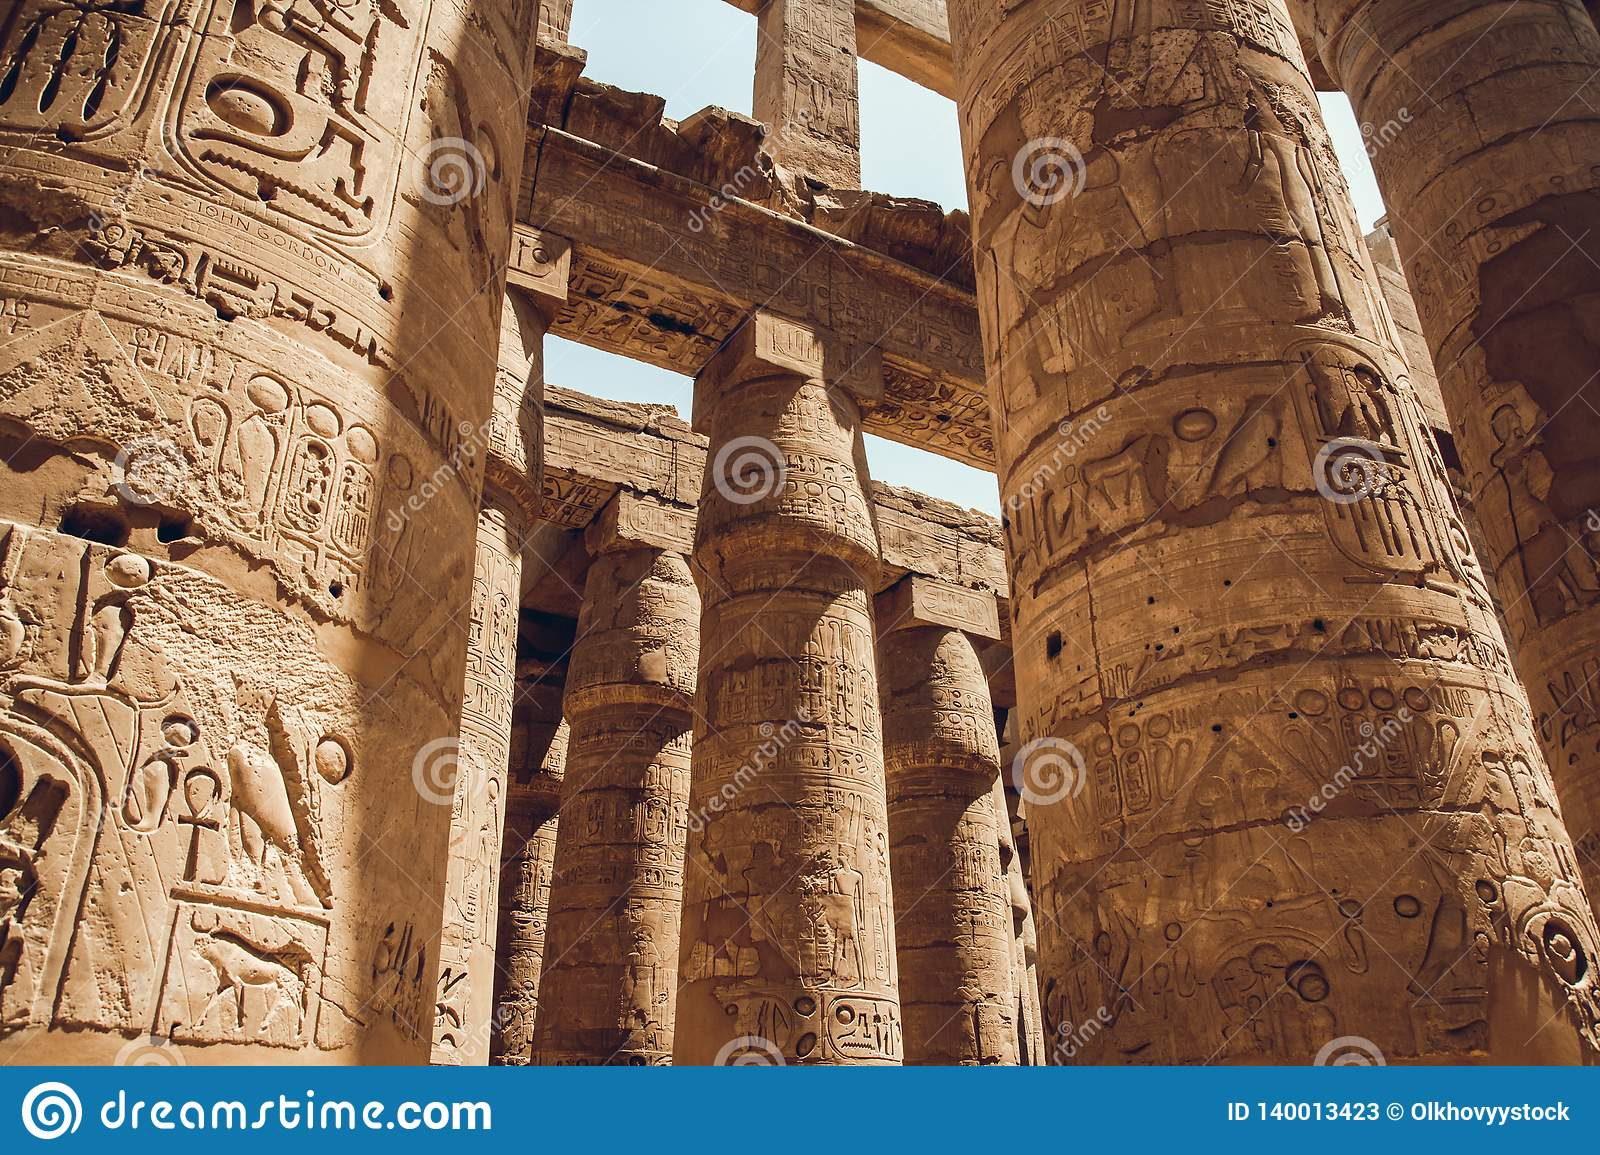 Columns with hieroglyphs in Karnak Temple at Luxor, Egypt. travel